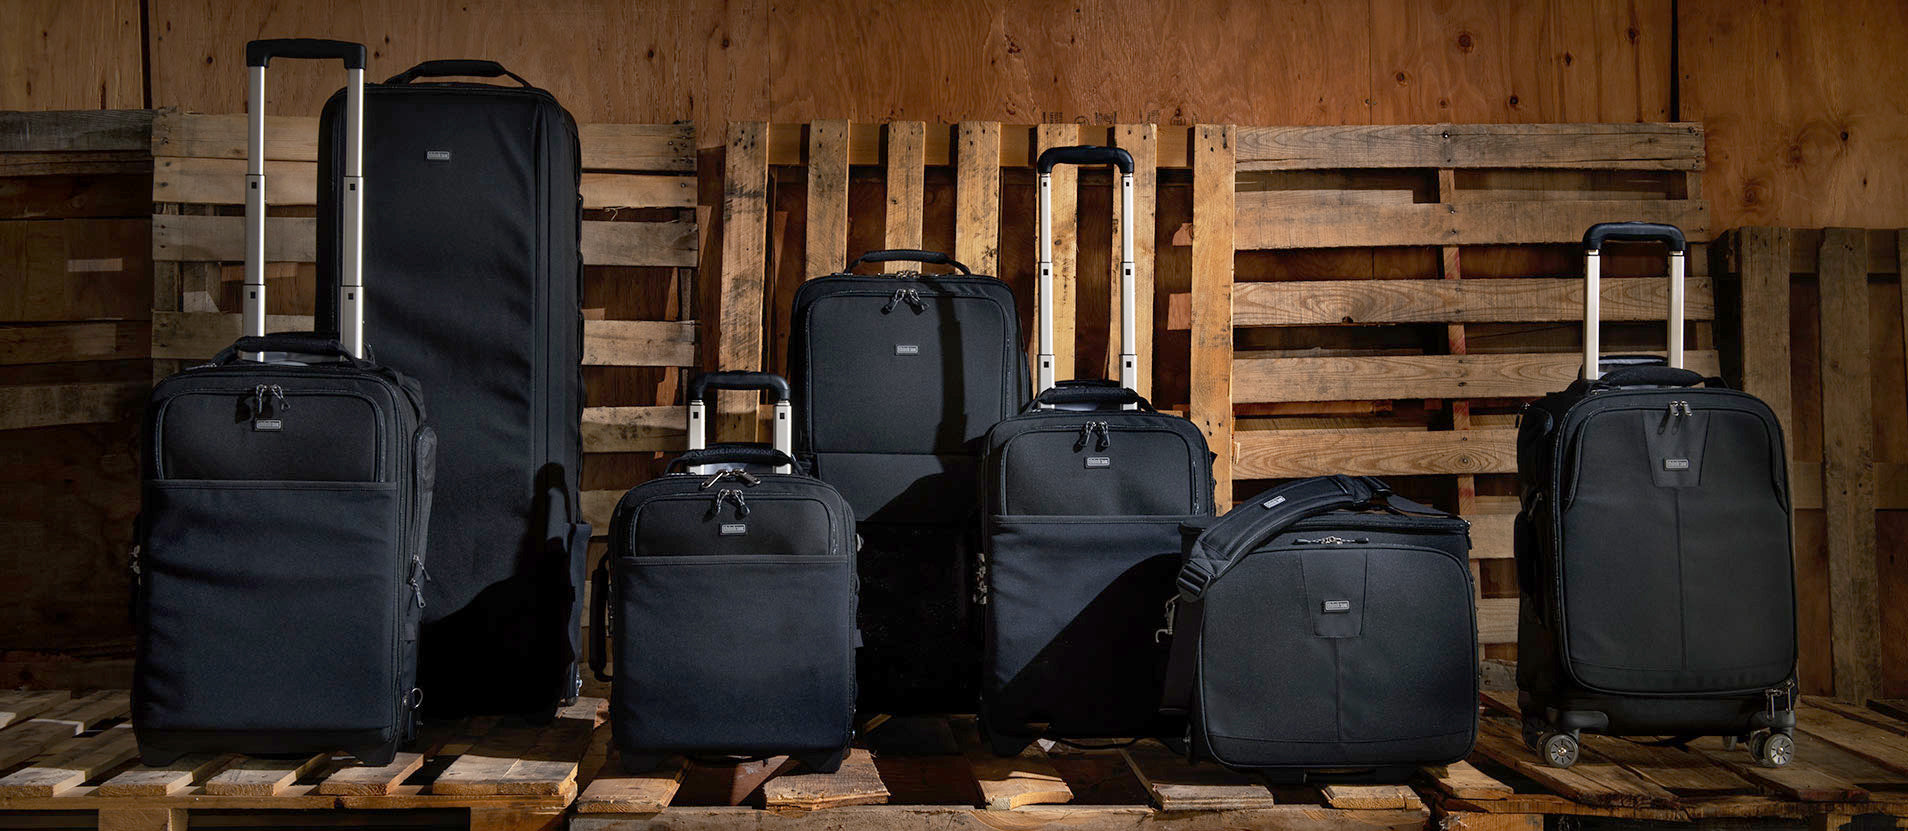 Camera Roller Bags and Camera Cases